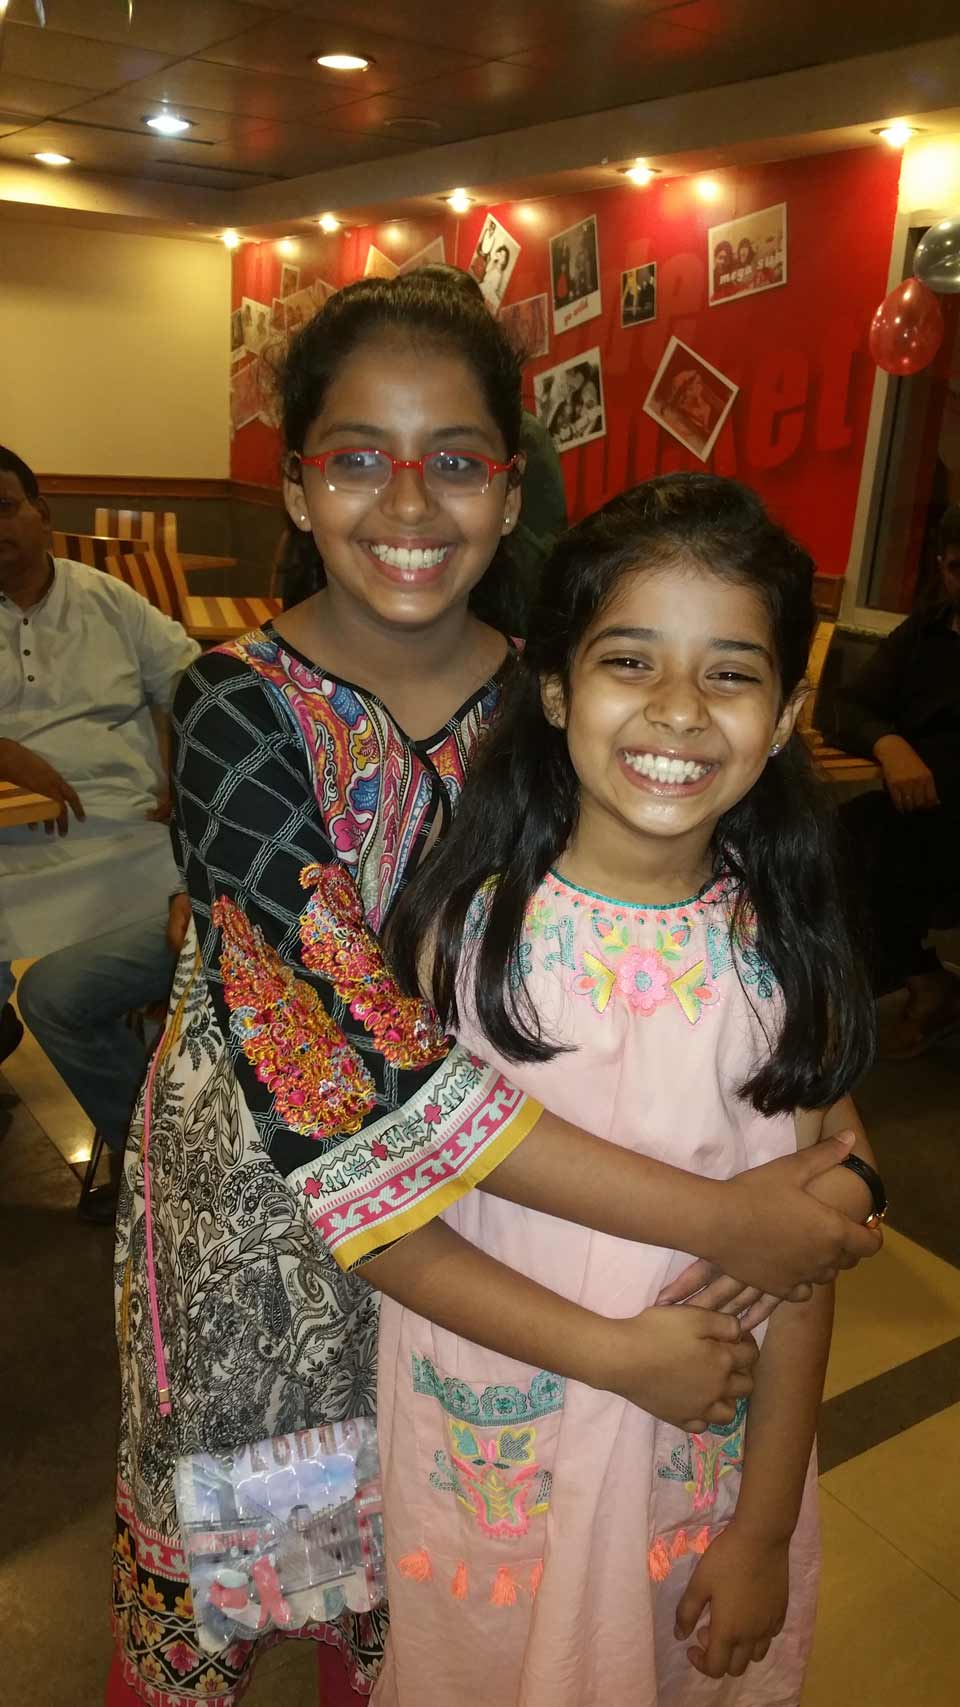 Zara with her cousin sister Maiam Ata Ur Rehman